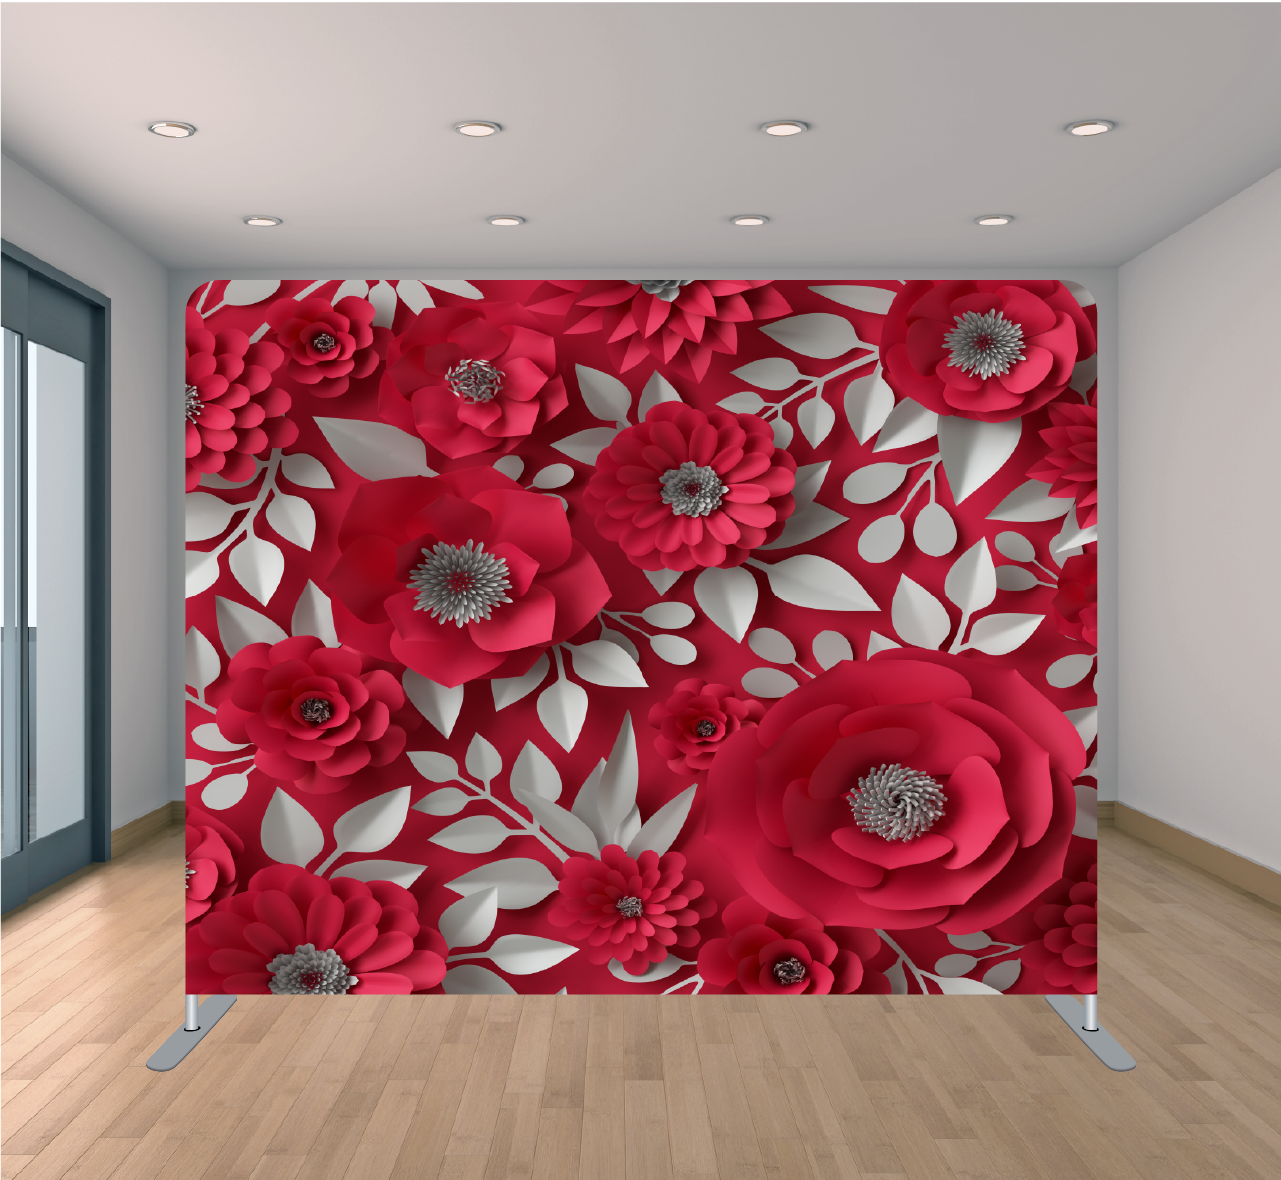 8x8ft Pillowcase Tension Backdrop- Red Paper Floral